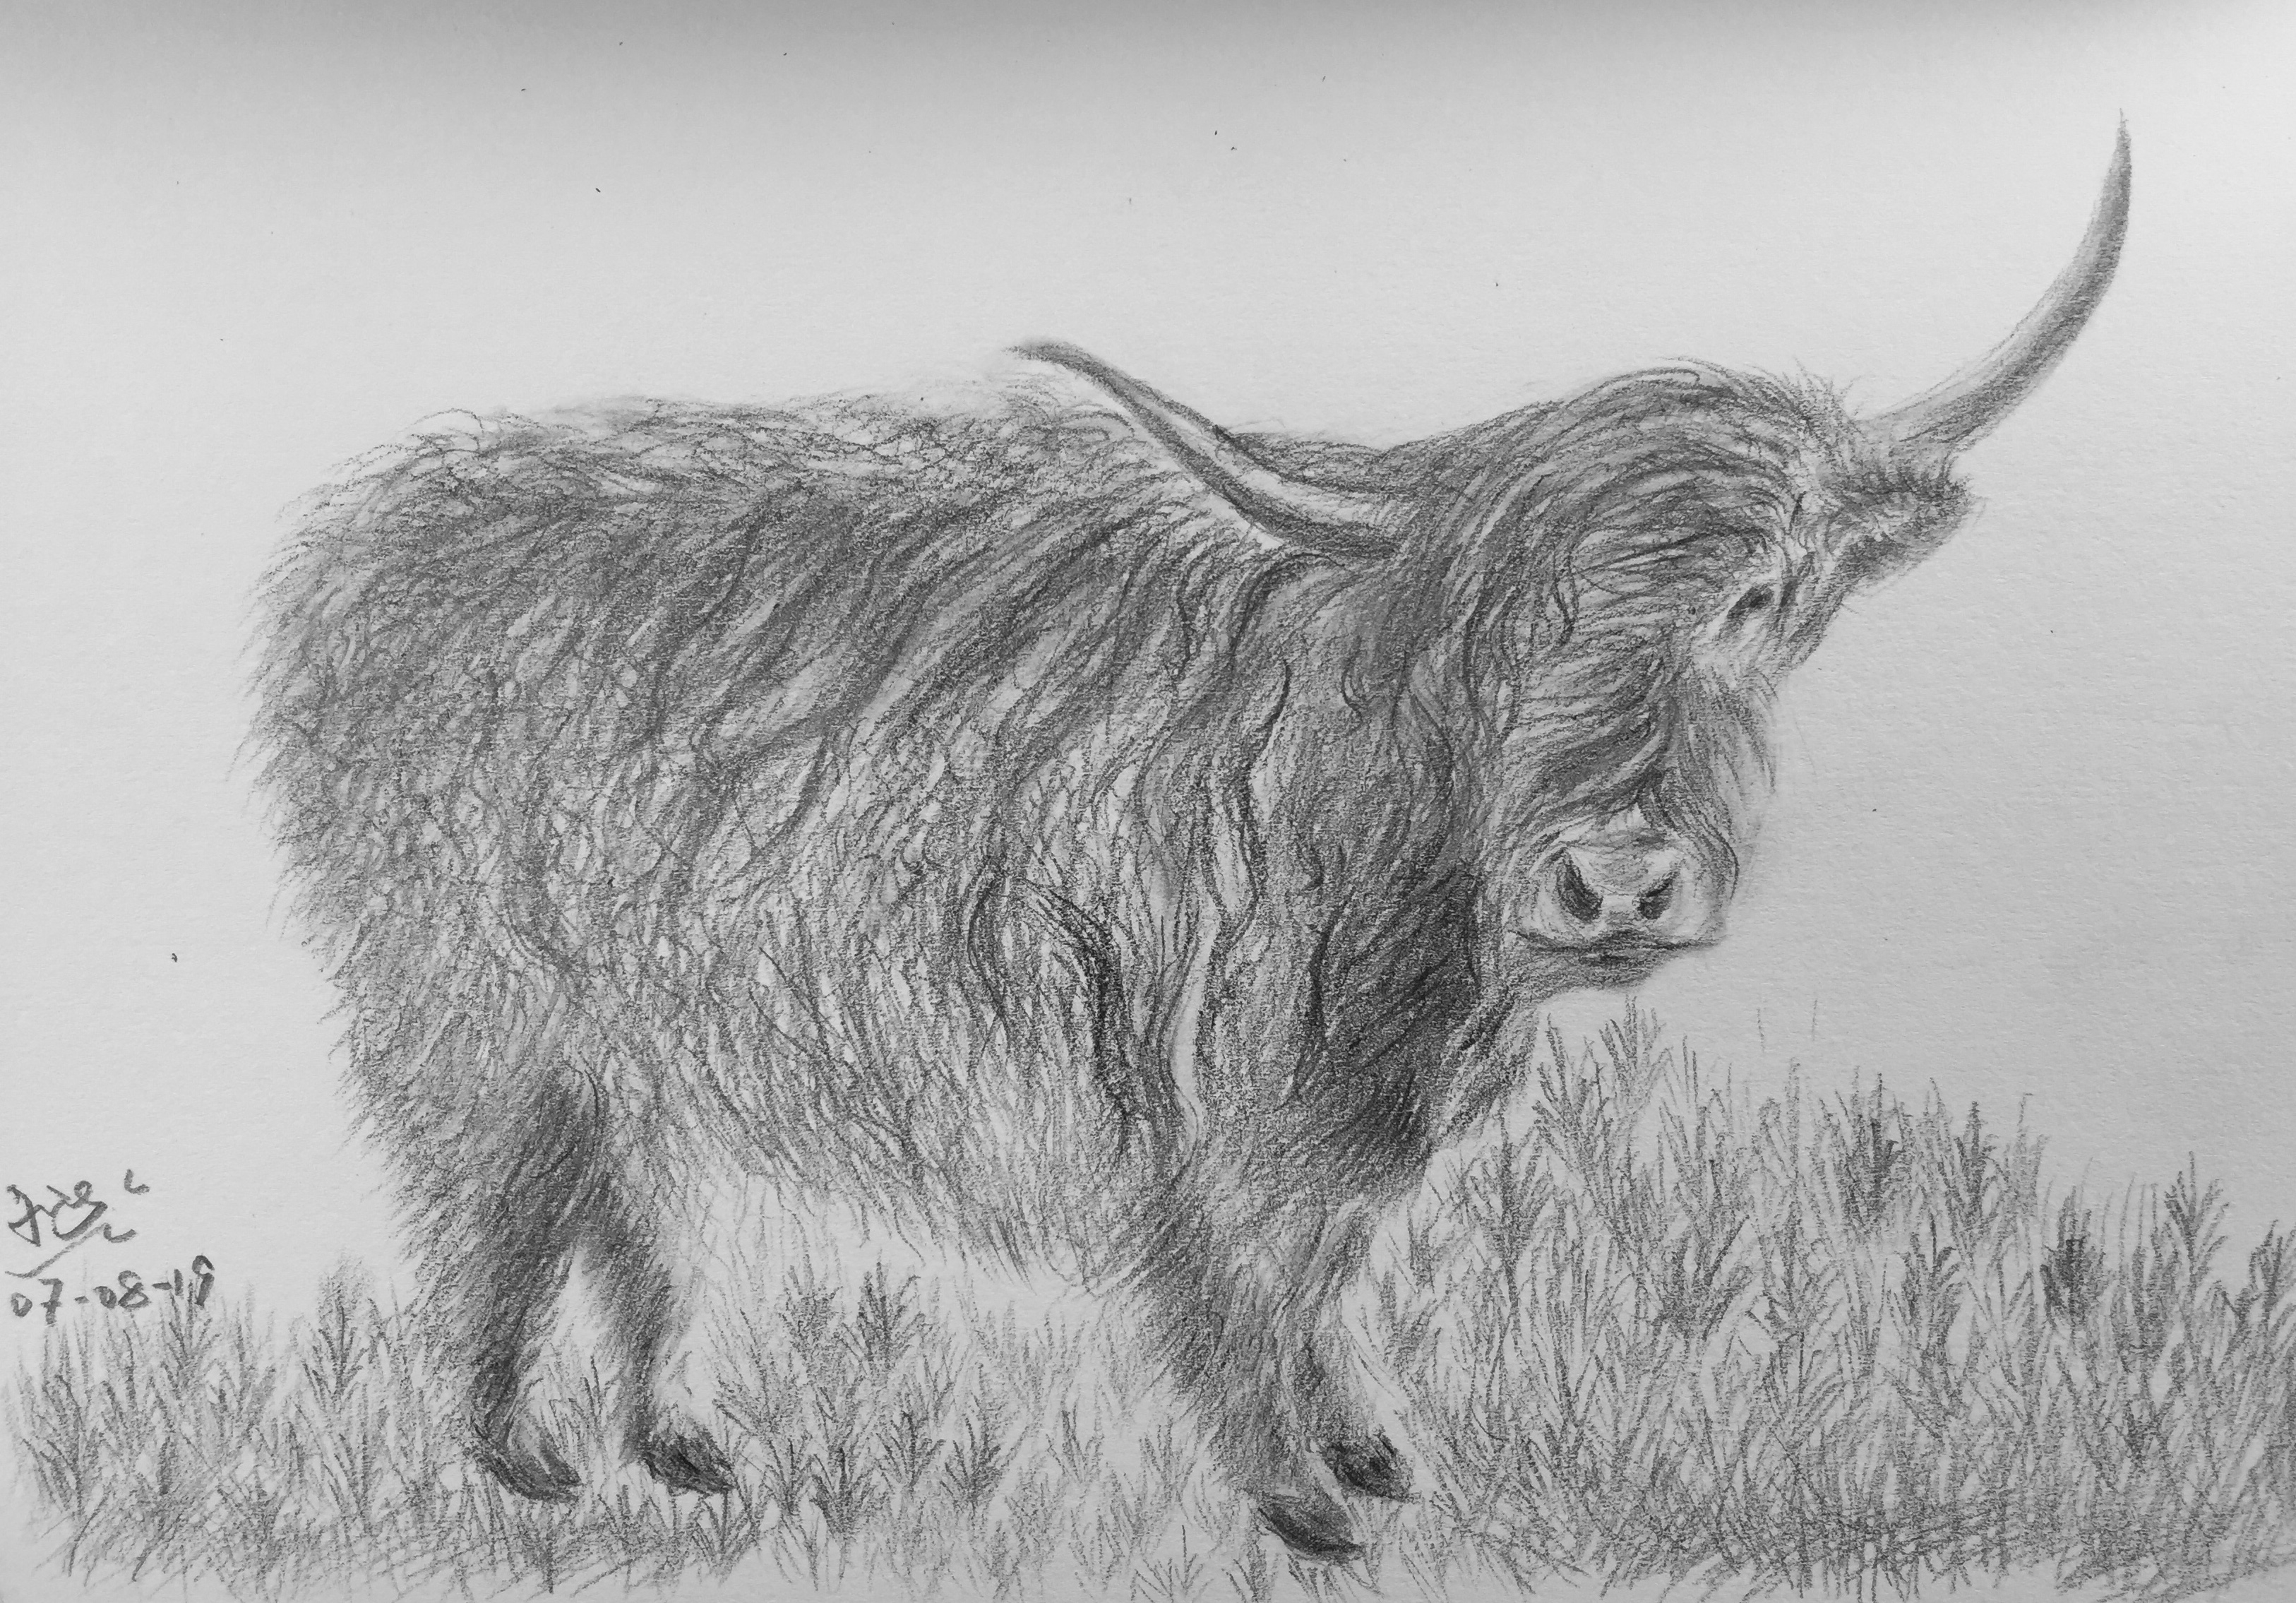 pencil drawing of a Scottish Angus